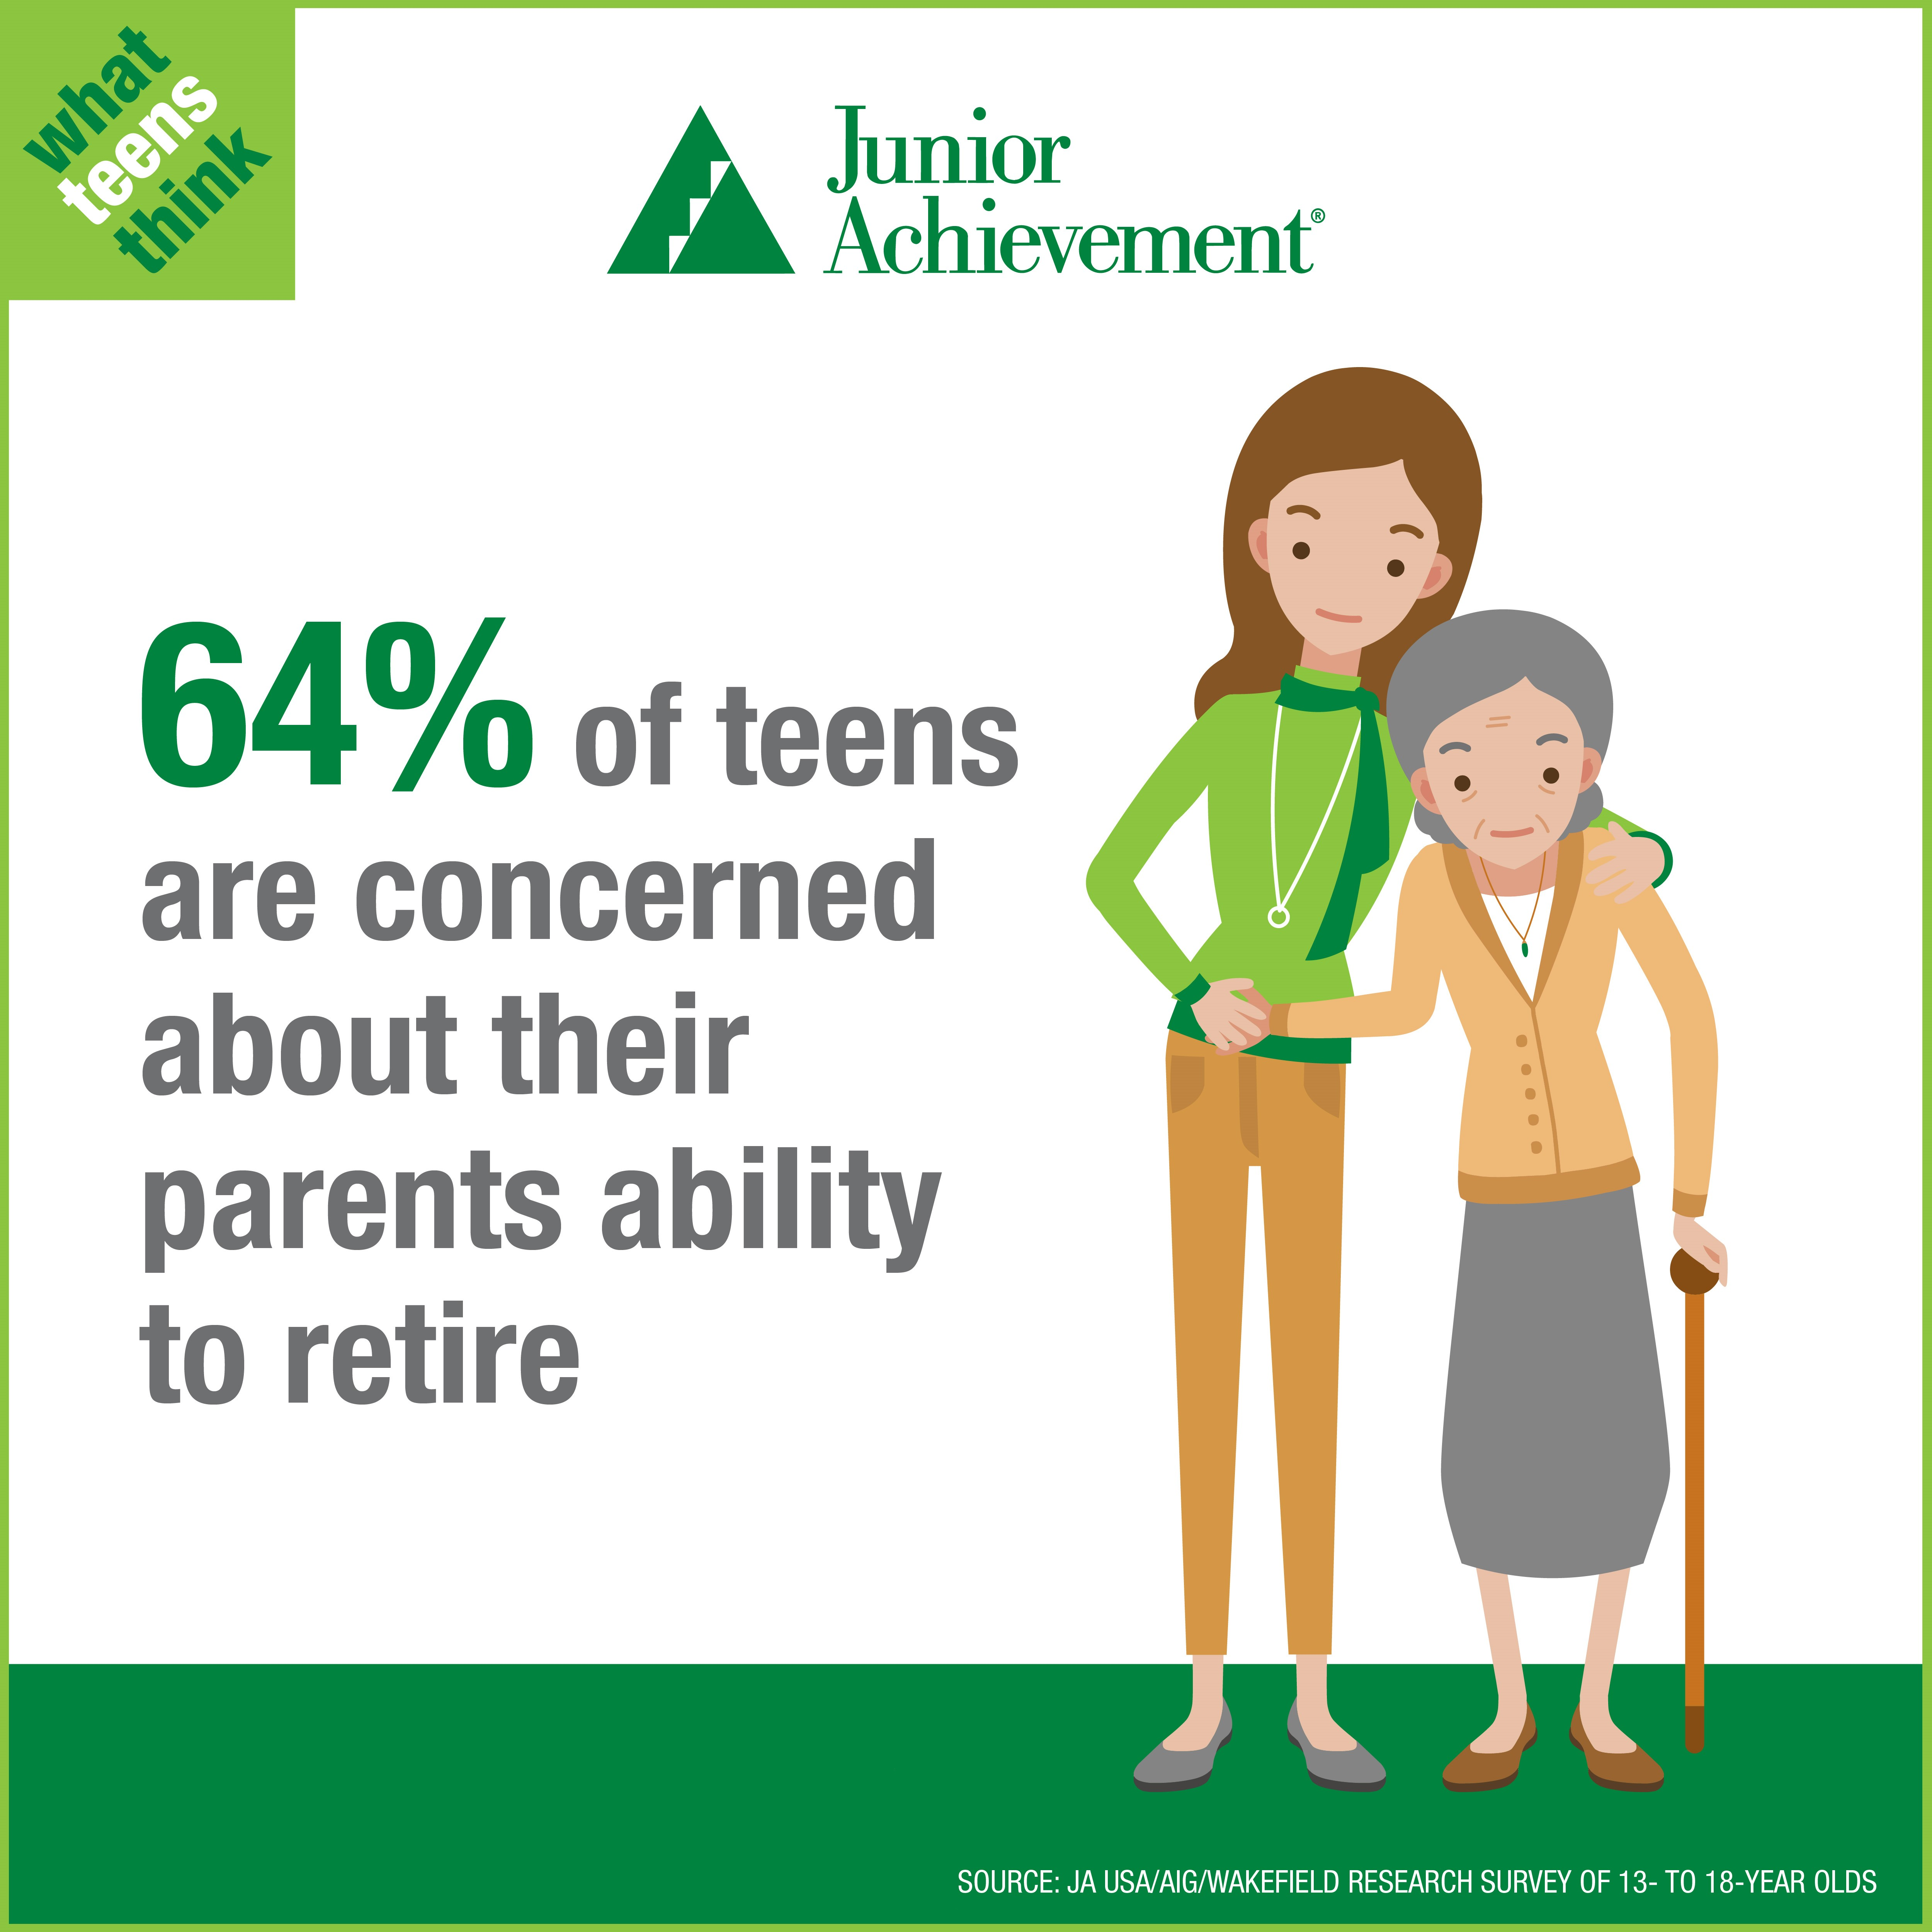 64% of teens are concerned about their parents ability to retire.